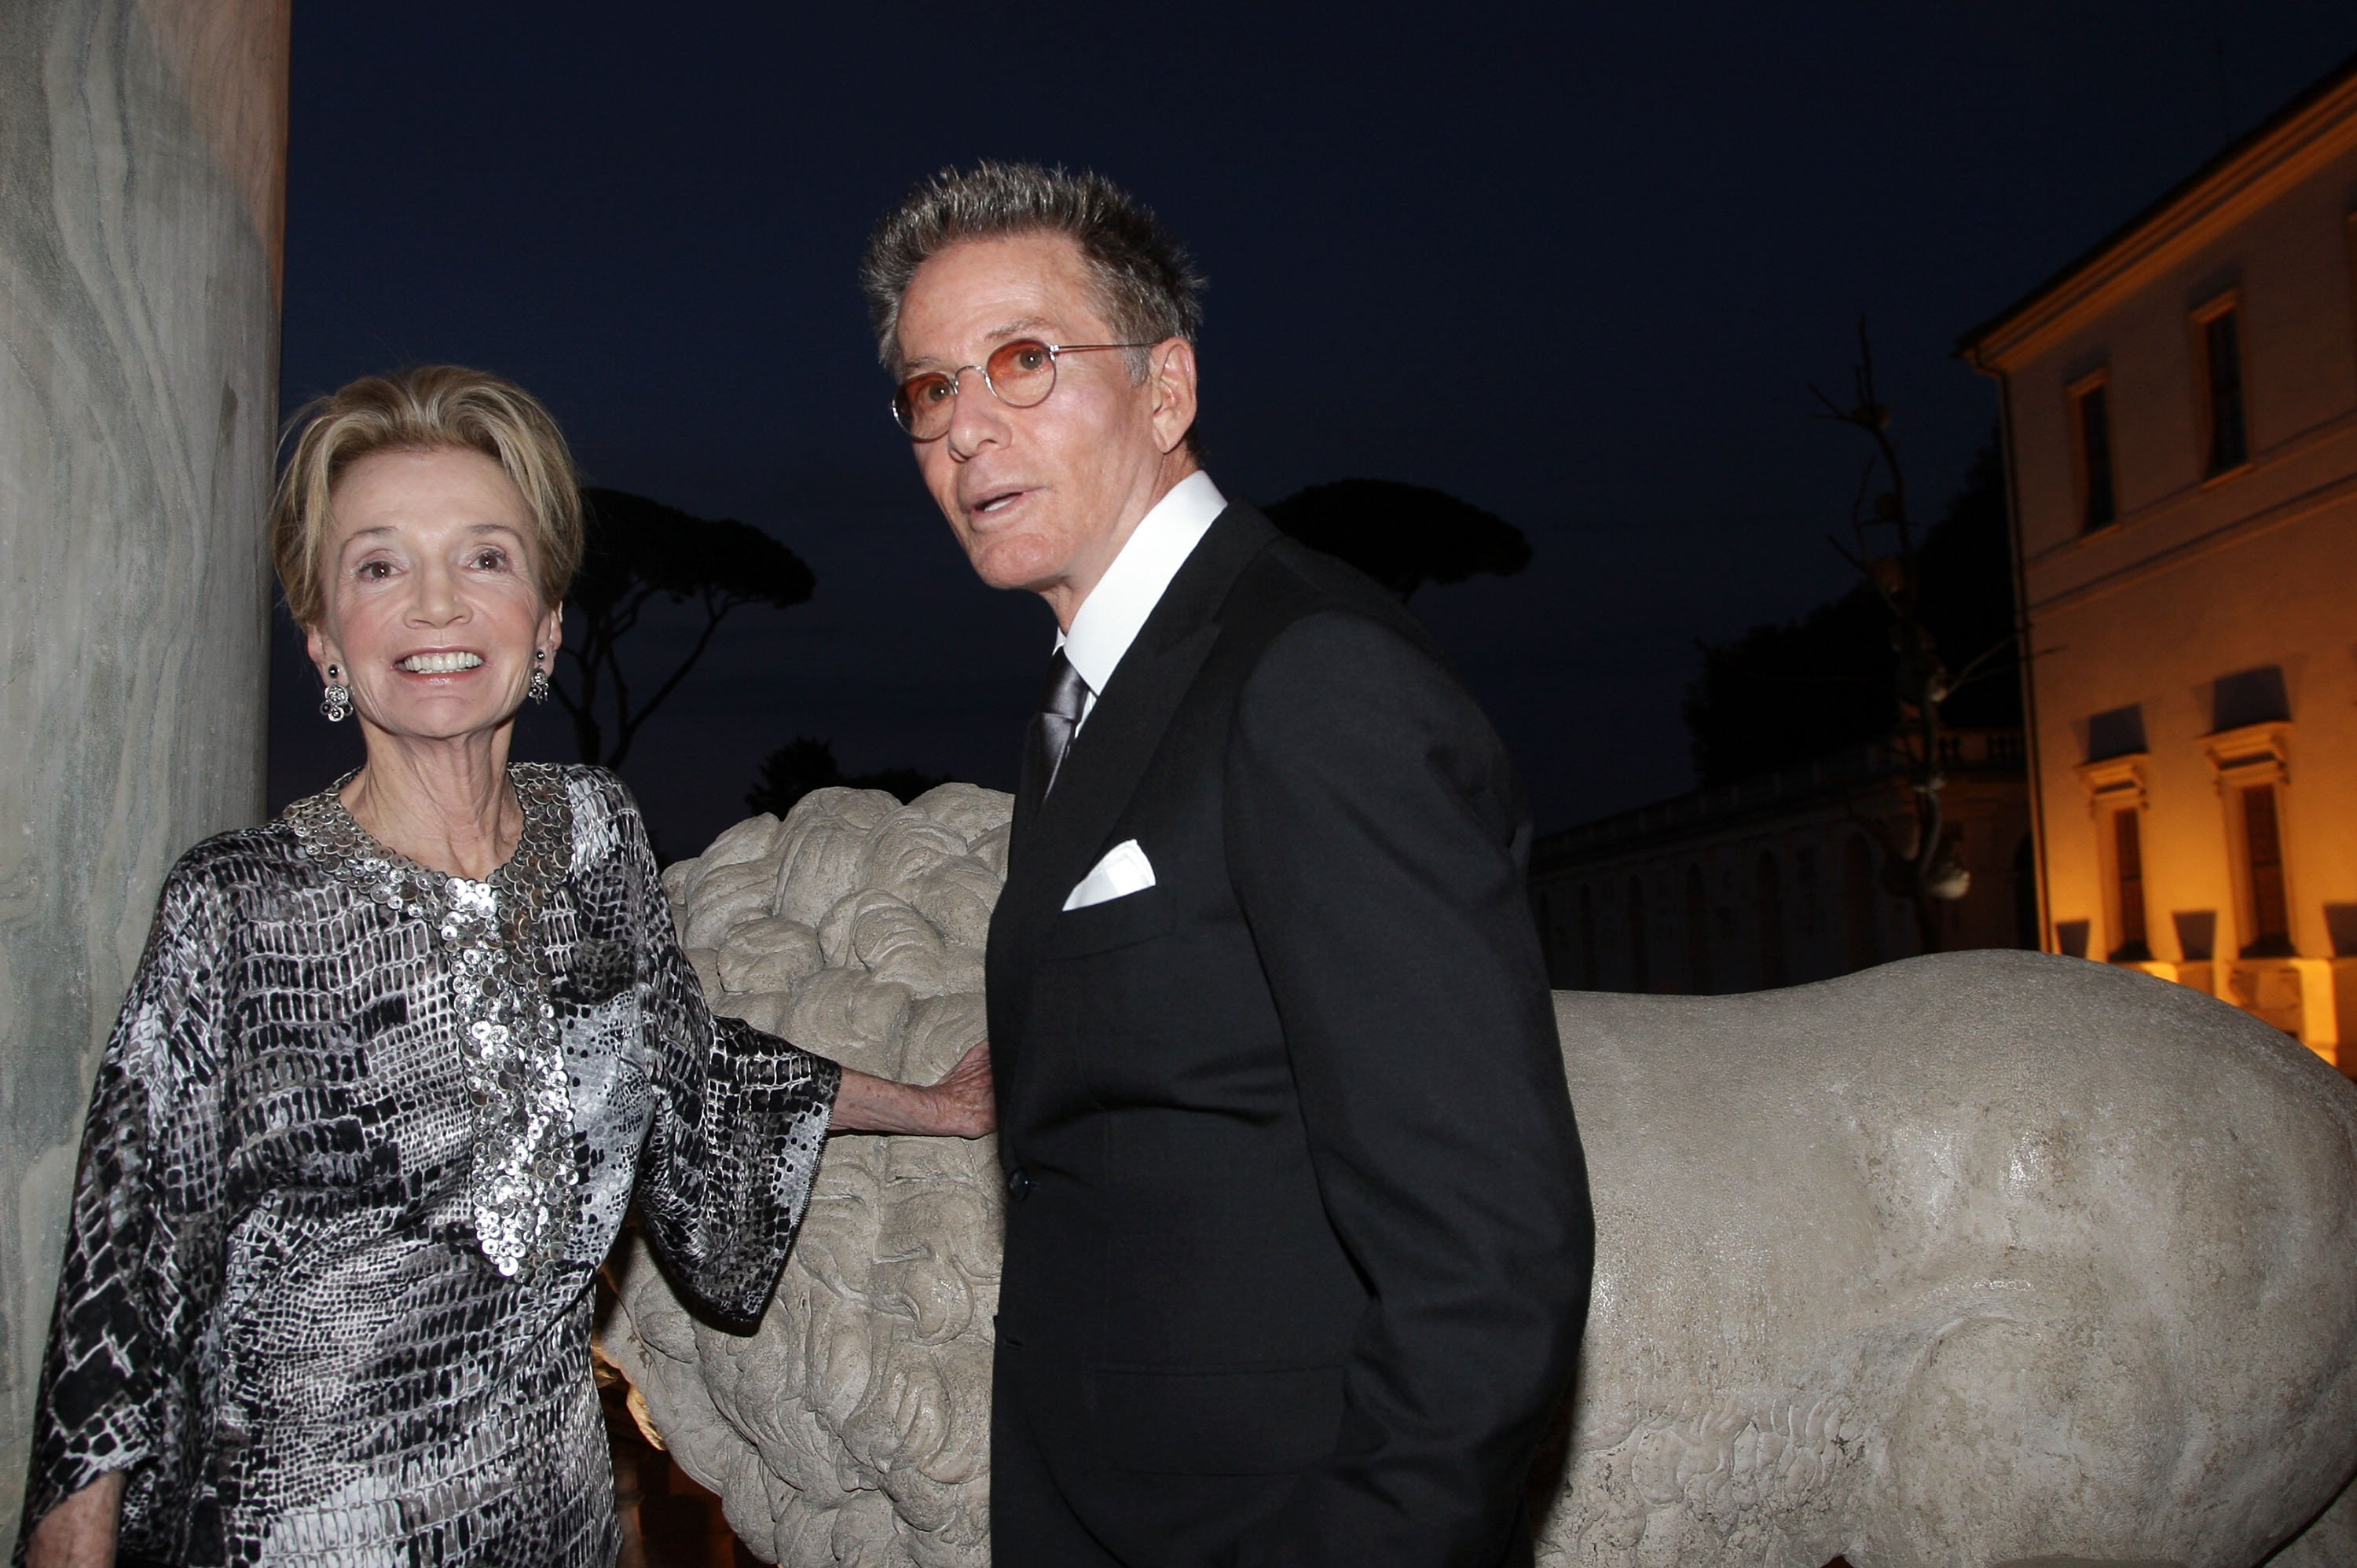 Lee Radziwill, the sister of Jacqueline Kennedy Onassis, and stylist Calvin Klein attend Marina Cicogna Opening Exhibition dinner at Villa Medici on June 3, 2009 in Rome, Italy. (Photo by Franco Origlia/Getty Images)